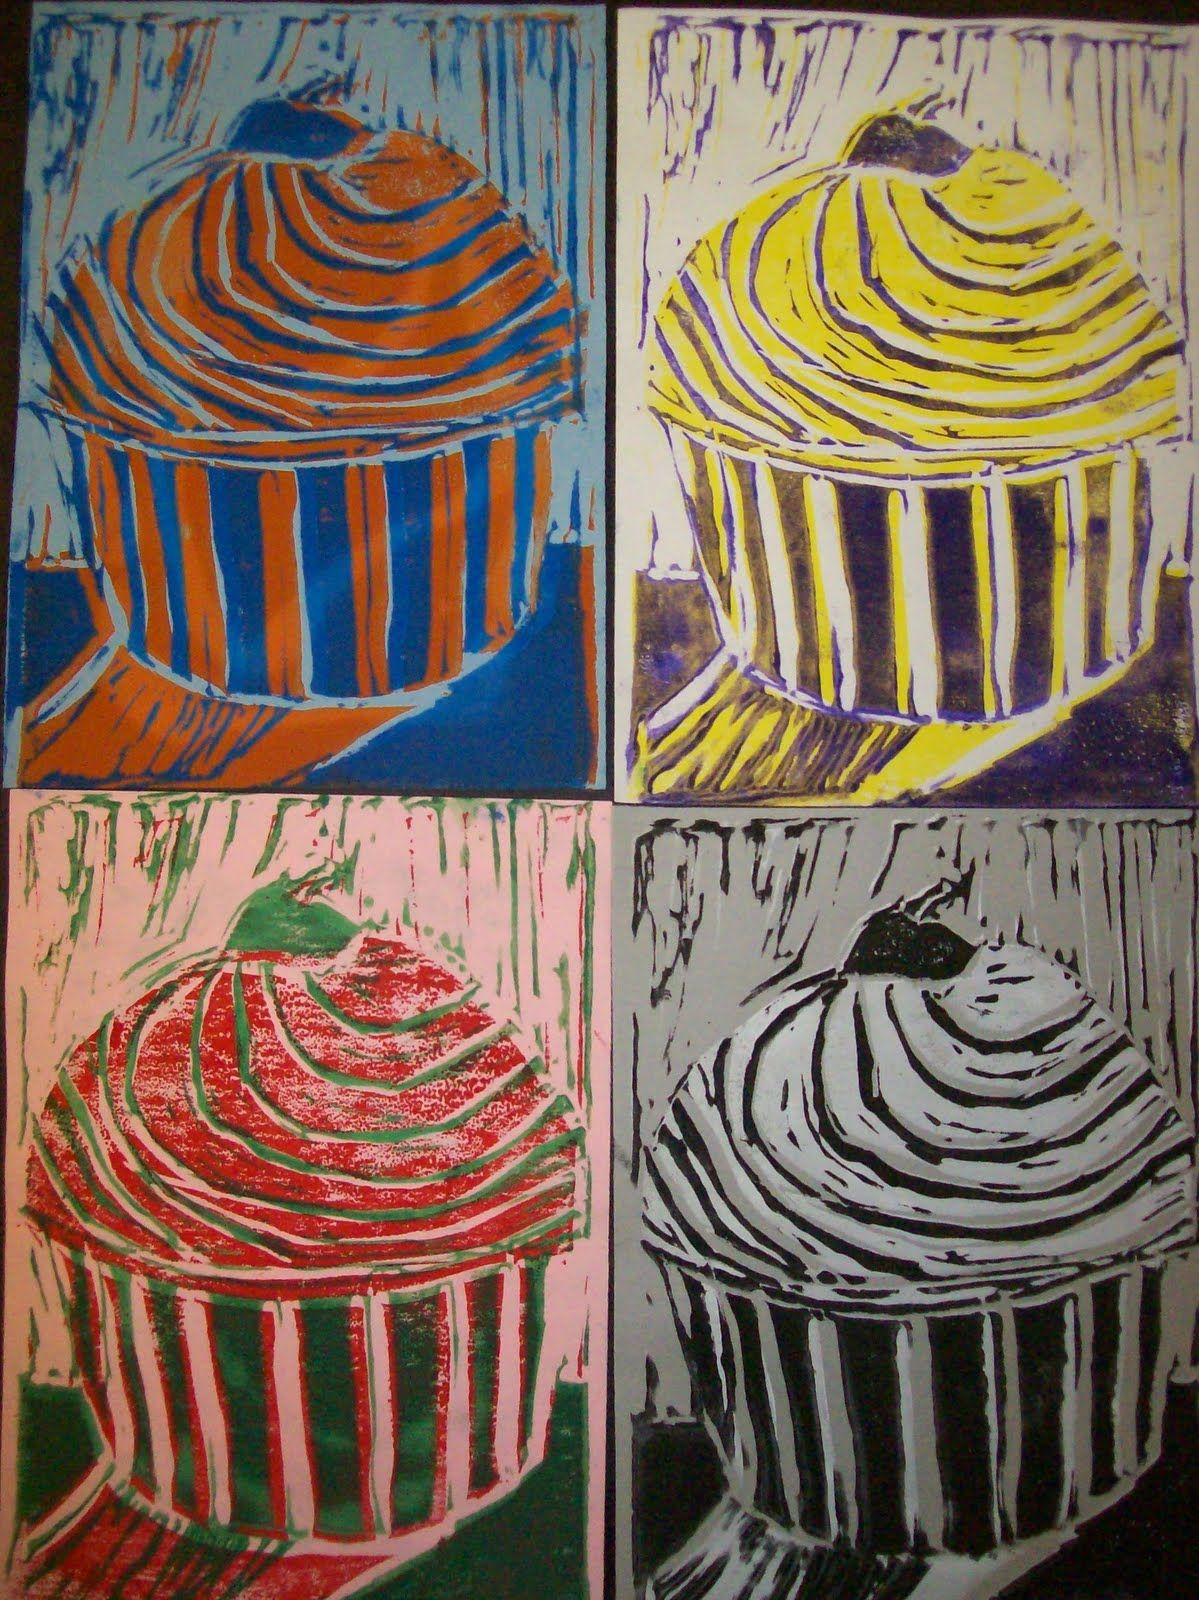 cce art happenings blog andy warhol inspired lino cut reduction prints read blog post comments. Black Bedroom Furniture Sets. Home Design Ideas